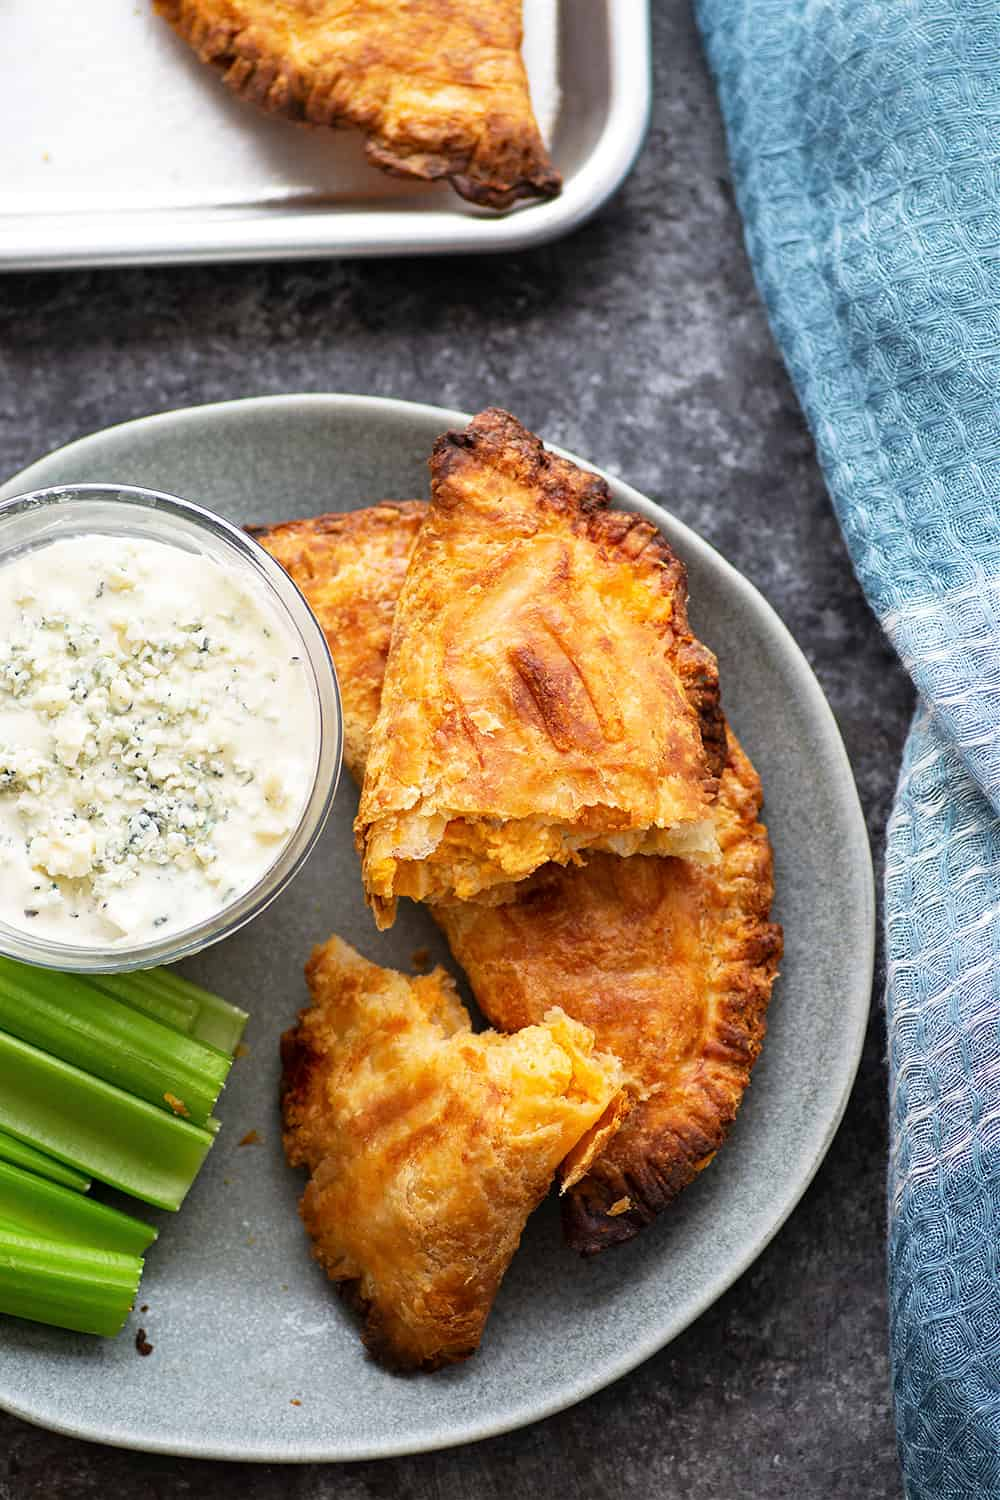 Crispy buffalo chicken empanadas are made entirely in the air fryer in MINUTES and stuffed with a spicy buffalo chicken filling. Serve these flaky empanadas with plenty of blue cheese dressing and celery sticks!